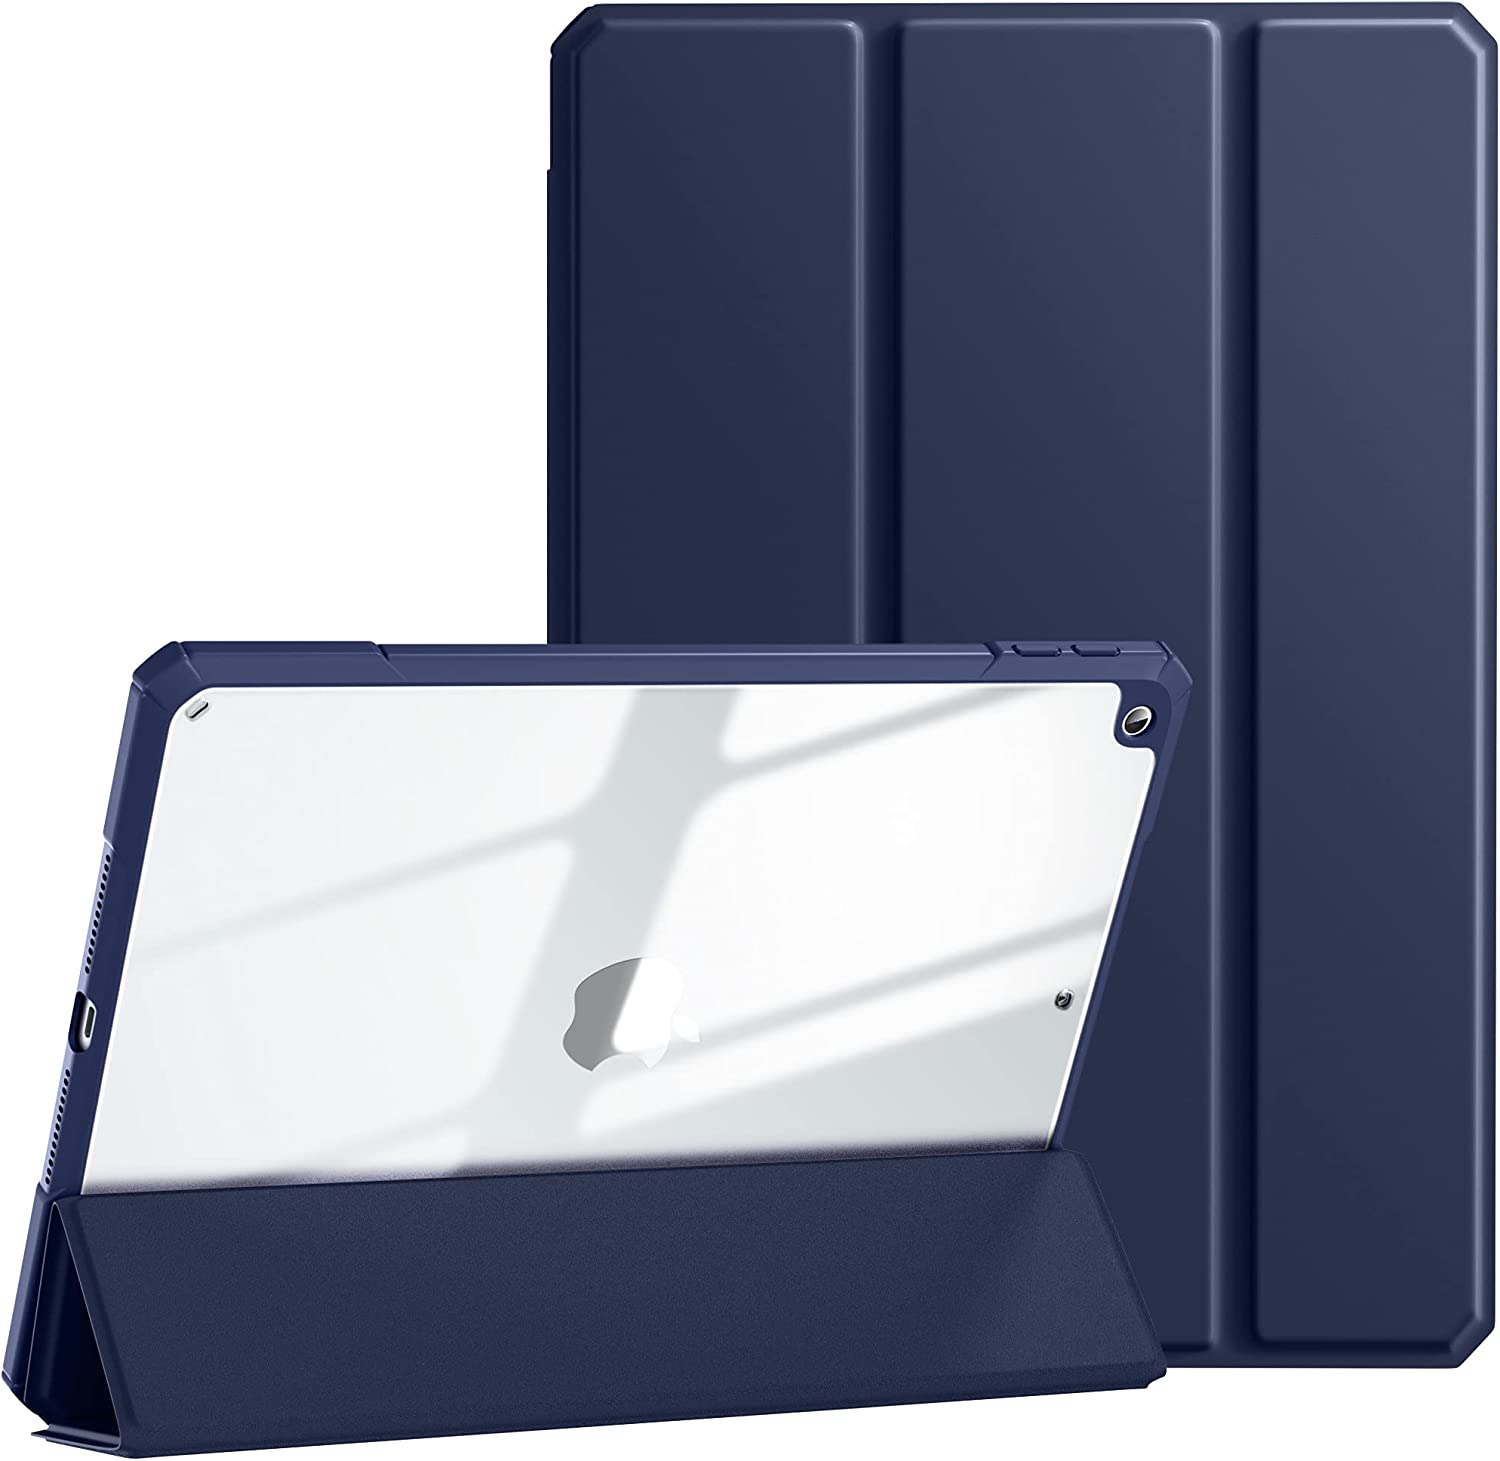 Mastten Compatible with iPad 8th Generation Case, iPad 7th Generation Case, iPad 10.2 Inch Case with Pencil Holder, Trifold Stand Clear Back Shell for iPad Case, Auto Sleep/Wake, Navy Blue